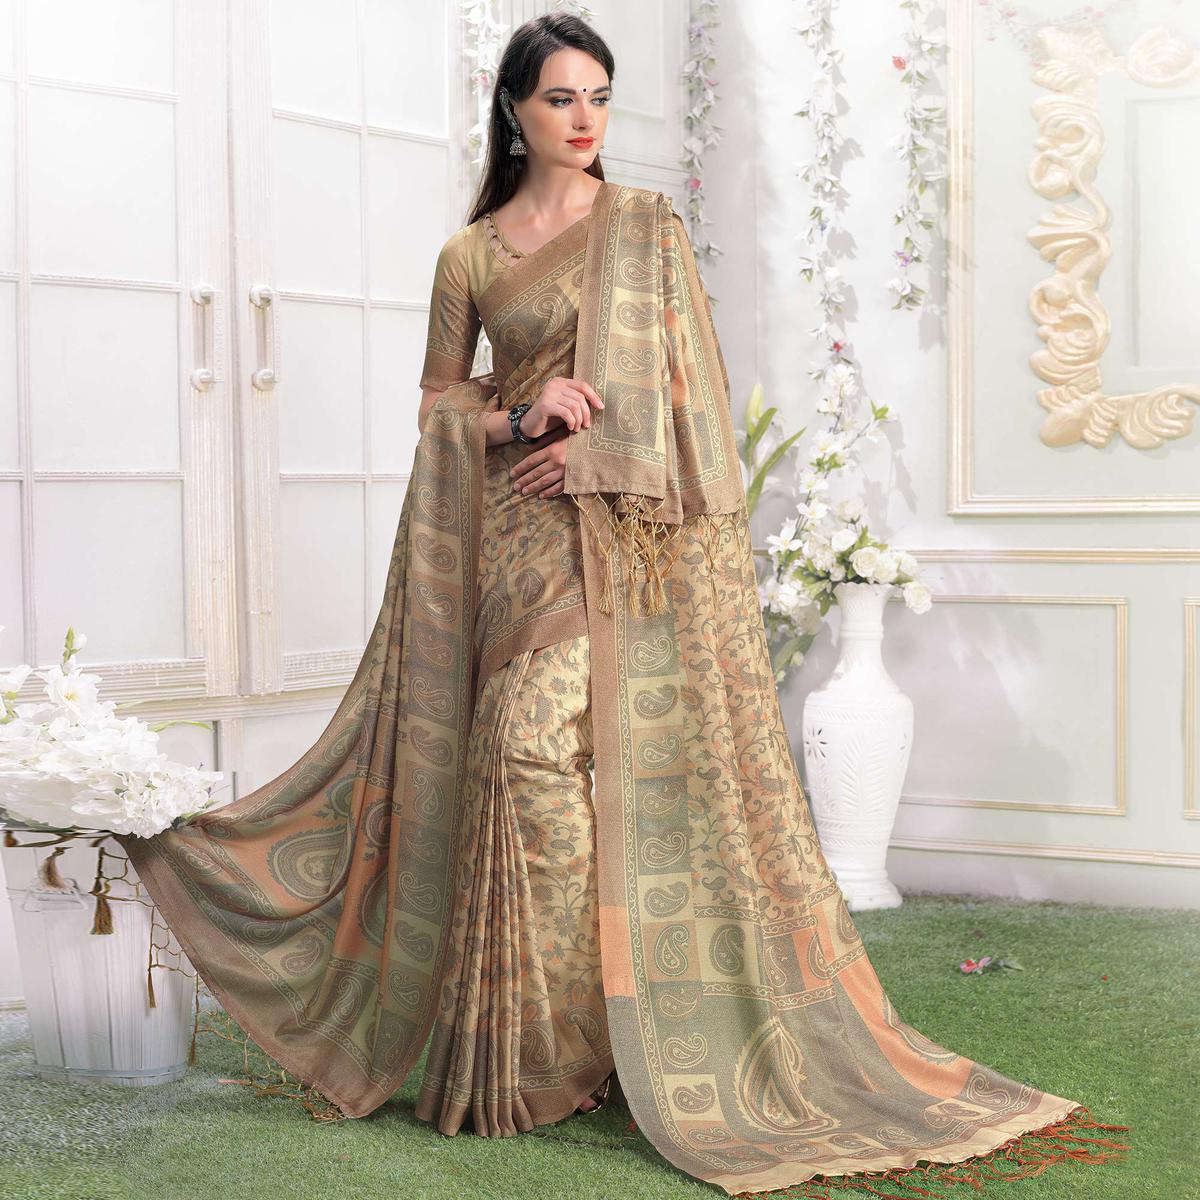 Surpassing Cream-Beige Colored Casual Printed Pashmina Silk Saree With Stole